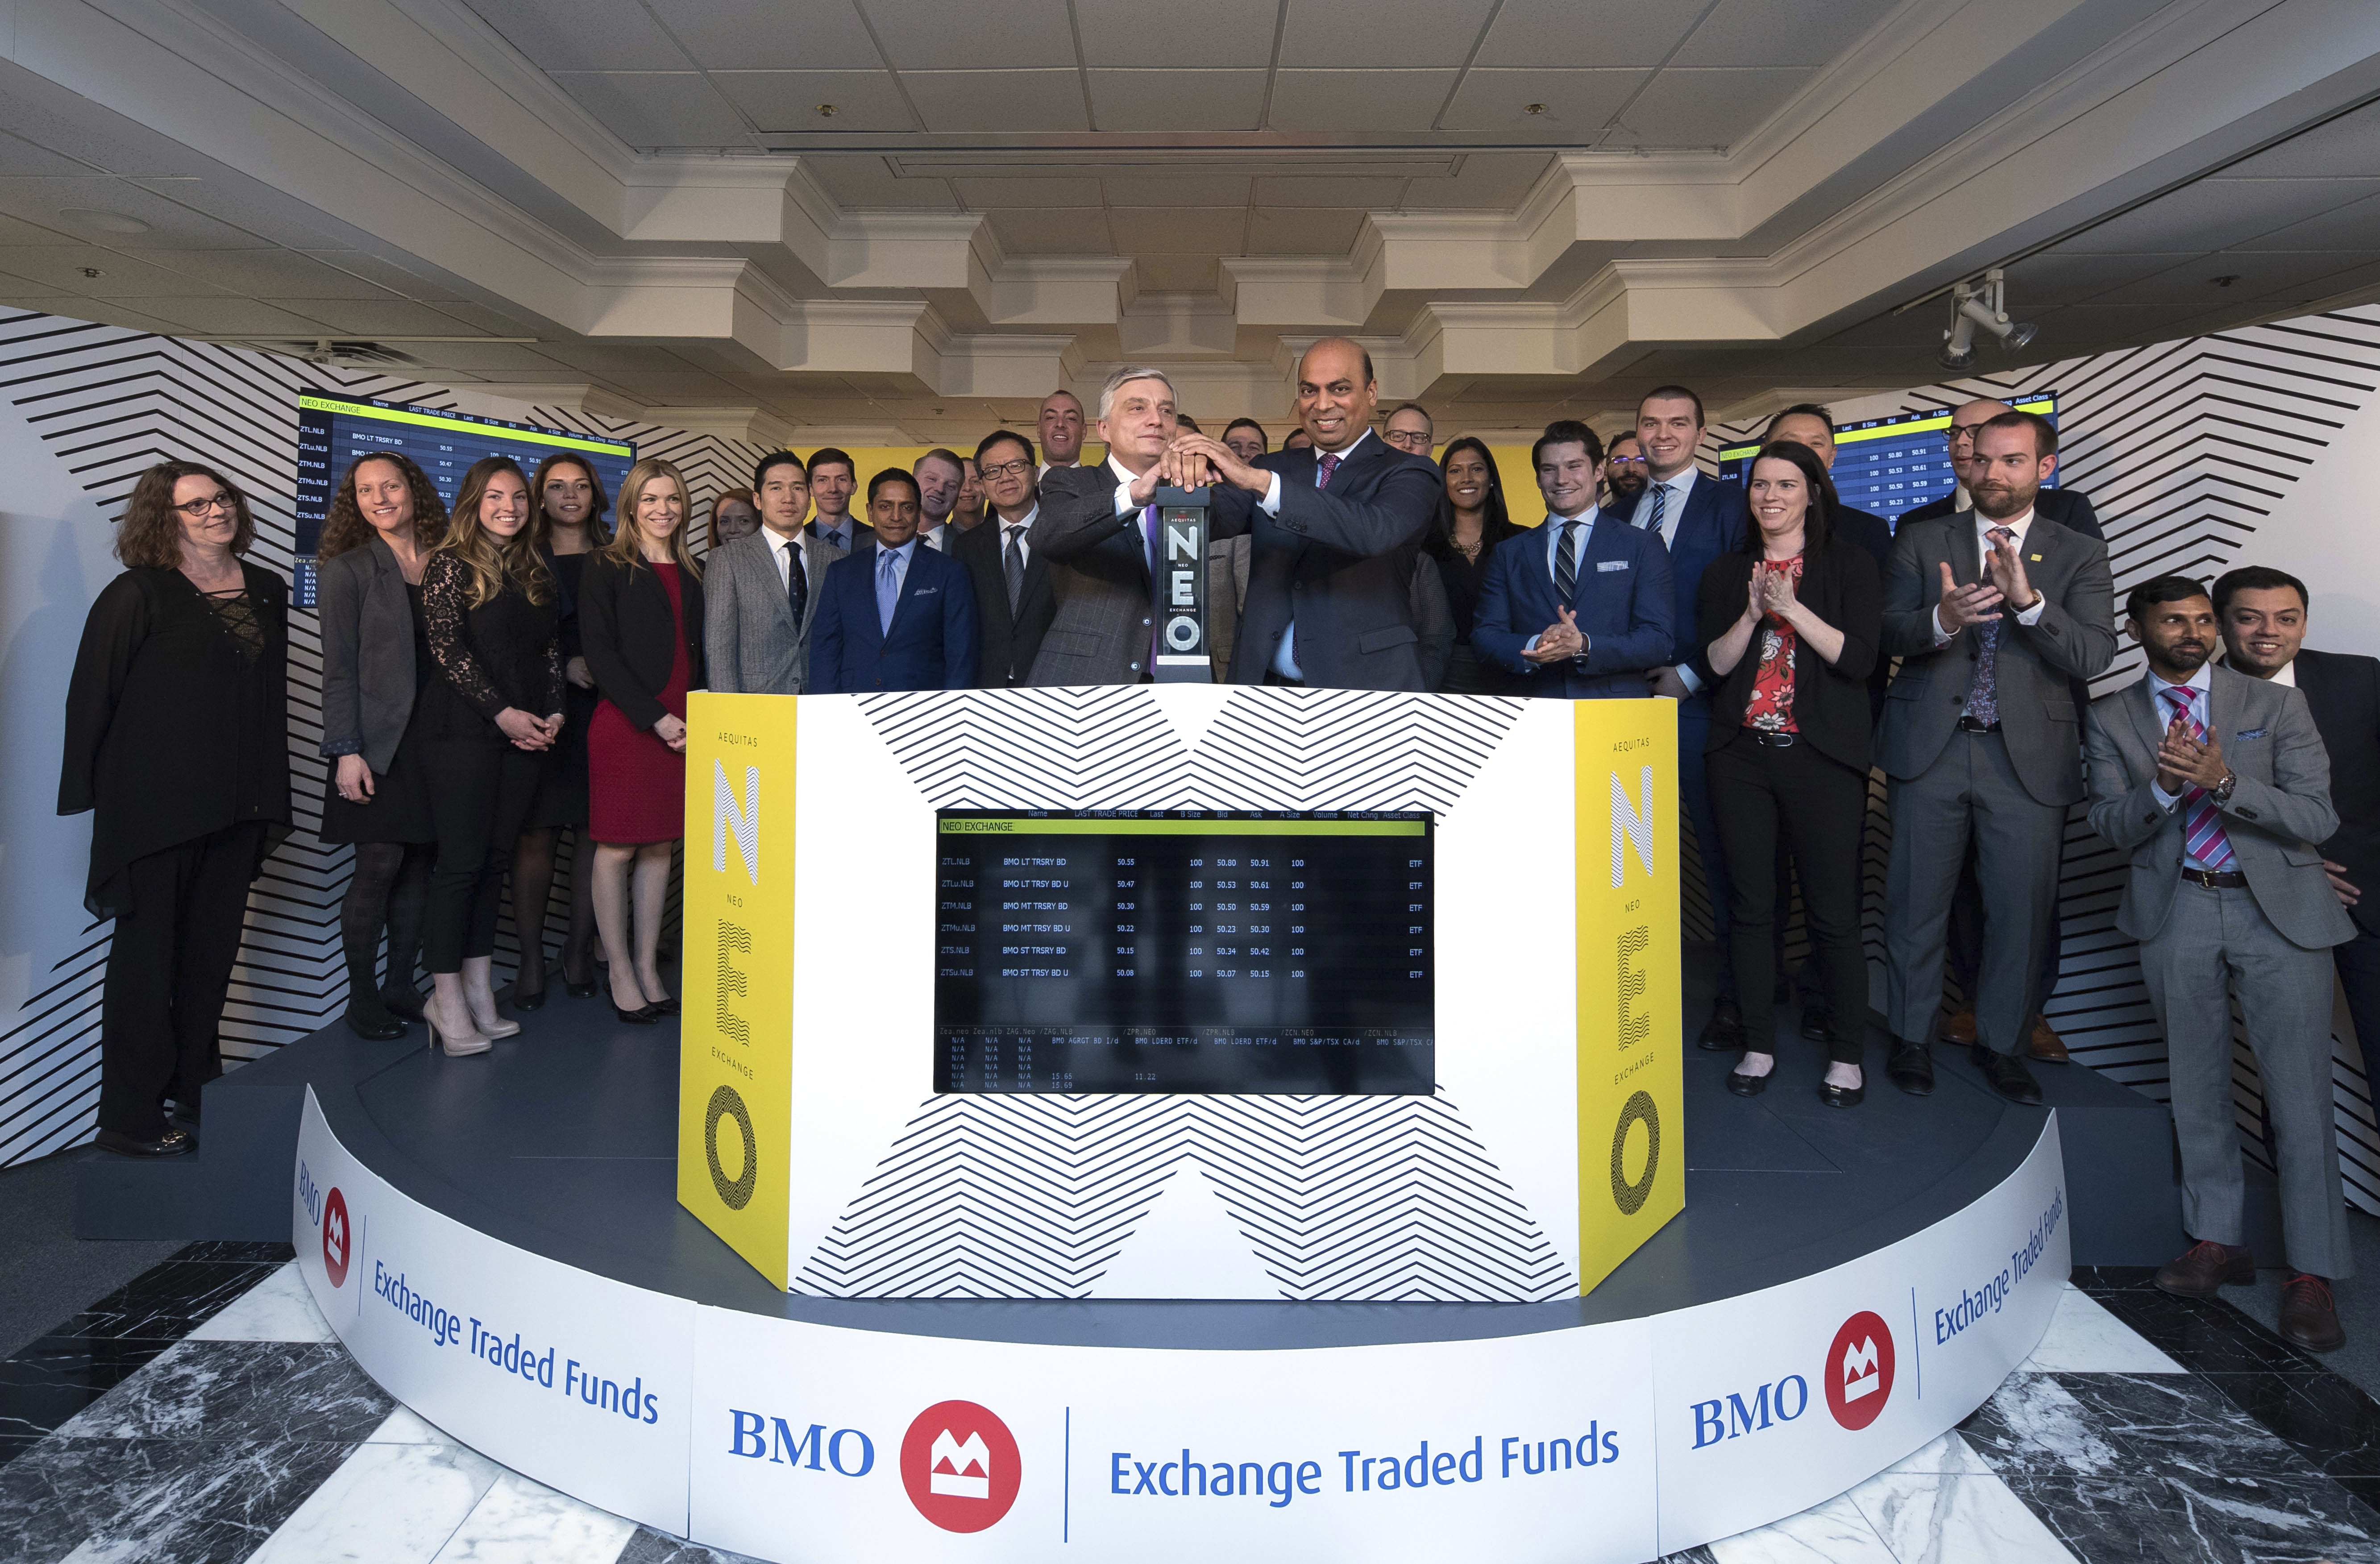 "Kevin Gopaul, Head, BMO Global Asset Management Canada, Global Head of ETFs and Chief Investment Officer, BMO Asset Management Inc. (""BMO AM""), joined Jos Schmitt, President and Chief Executive Officer, Aequitas NEO Exchange Inc. (""NEO Exchange""), to open the market, marking the launch of six BMO exchange-traded-funds (ETFs) that began trading on the NEO Exchange today. Established in June 2009, BMO Financial Group's ETF business is a leading ETF provider in Canada. The six U.S. Treasury funds include: BMO Long-Term US Treasury Bond Index ETF (ZTL, ZTL.U); BMO Mid-Term US Treasury Bond Index ETF (Ticker: ZTM, ZTM.U), and; BMO Short-Term US Treasury Bond Index ETF (ZTS, ZTS.U). (Photo: Business Wire)"